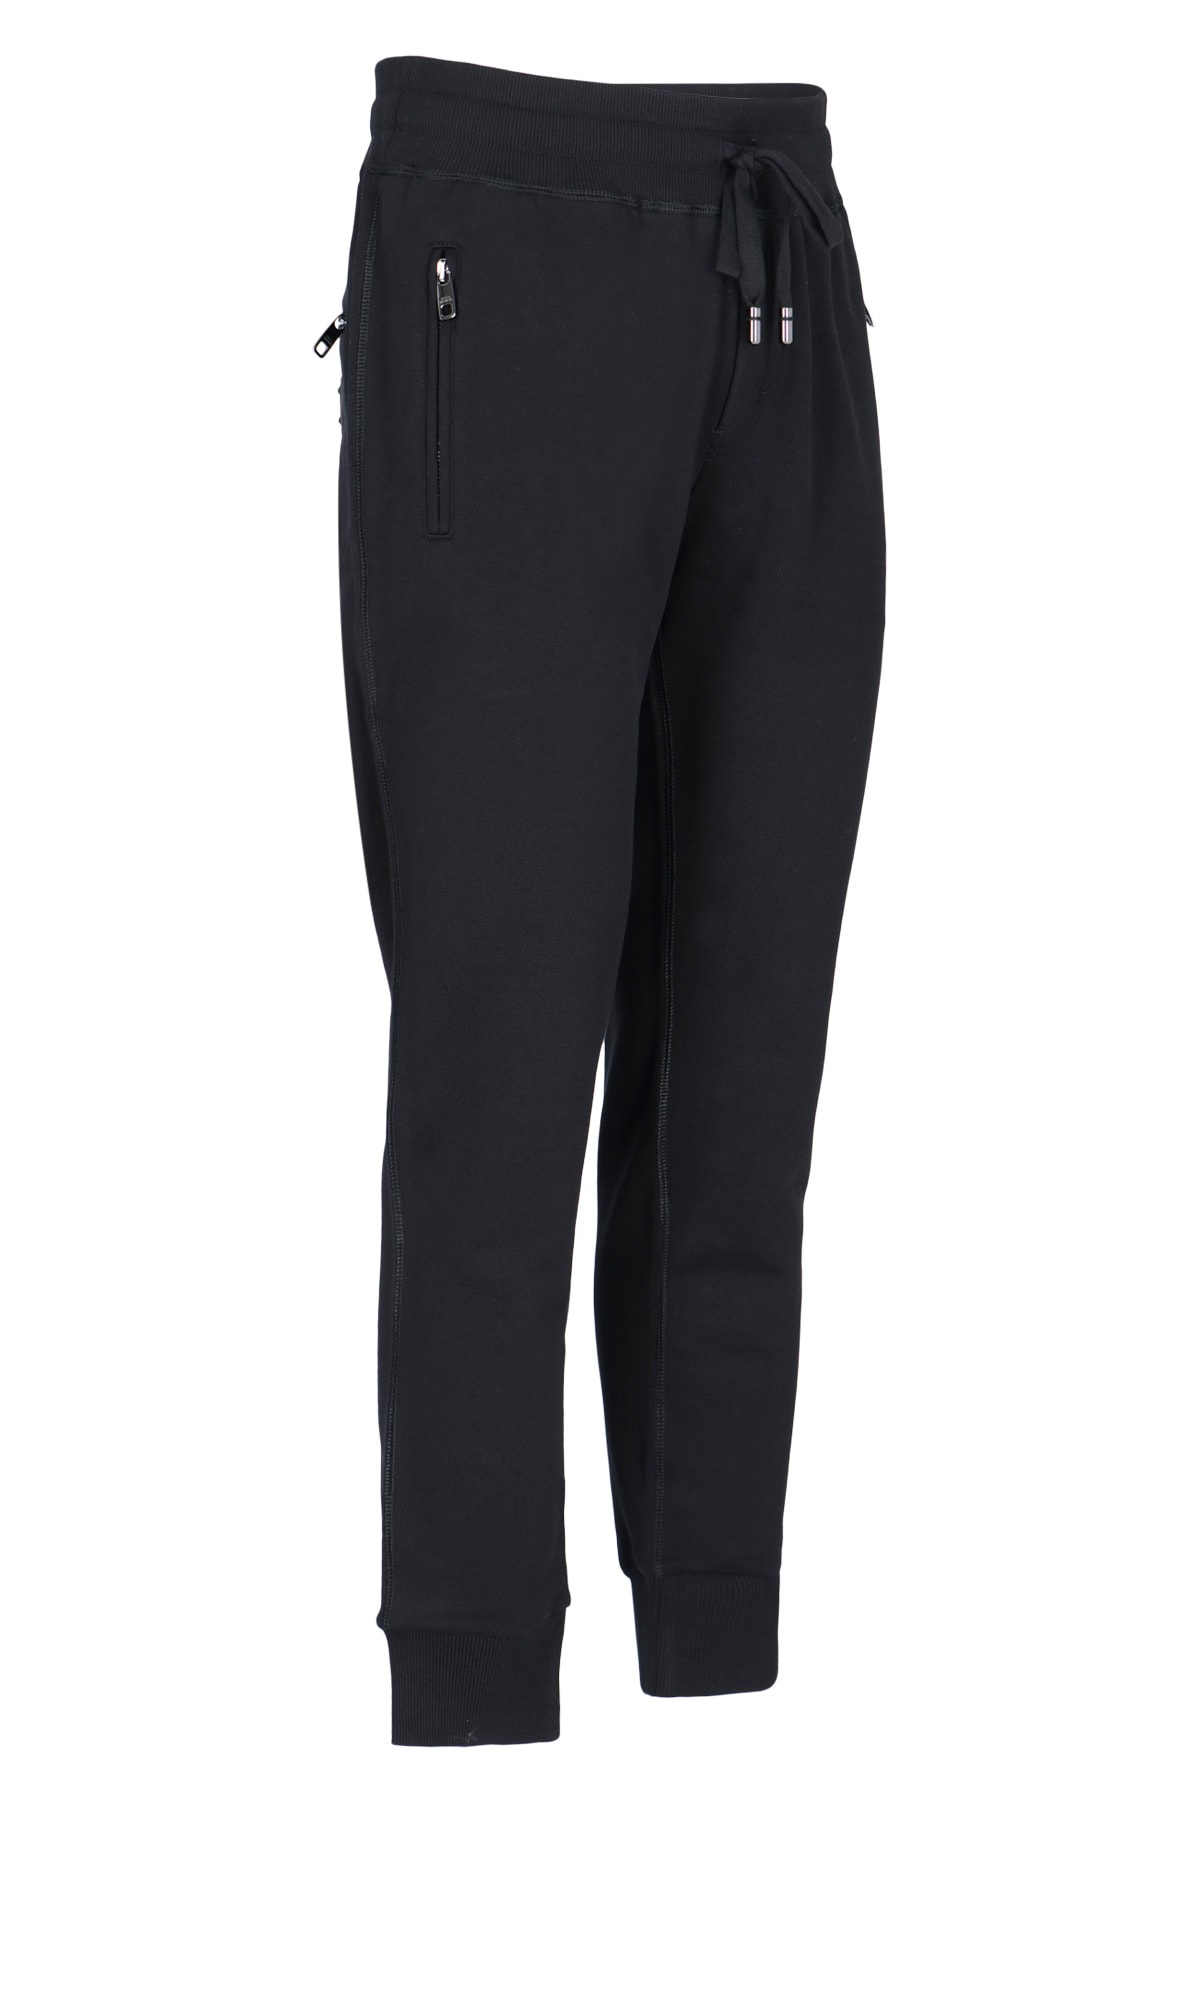 Recommend Cheap Dolce & Gabbana Trousers - Top Quality